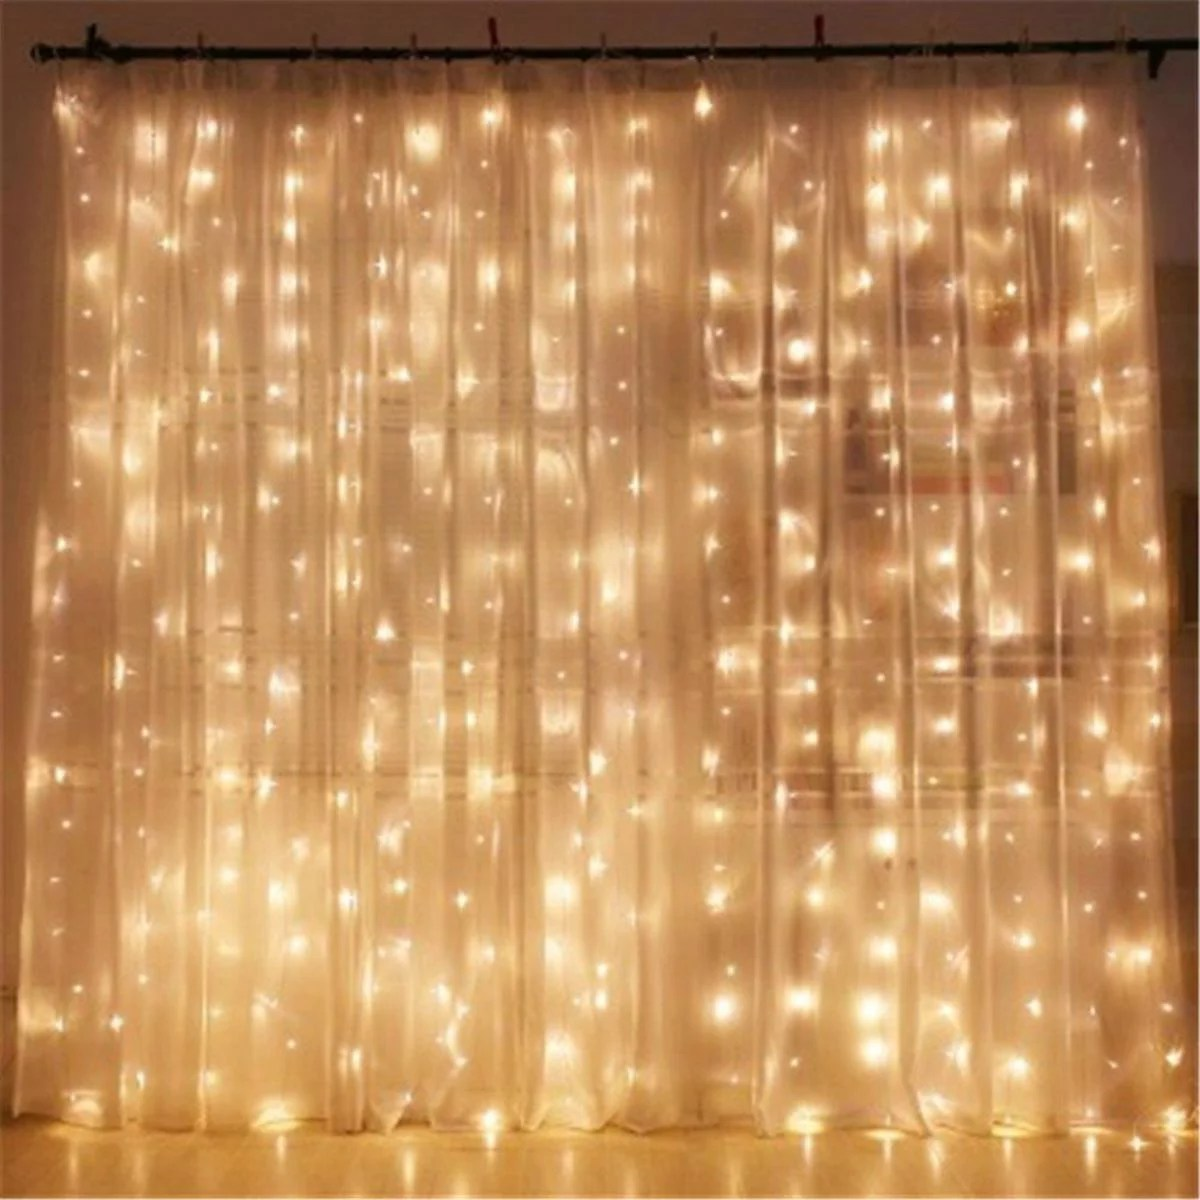 300 led window curtain fairy lights usb string hanging wall lights with remote for home garden bedroom wedding outdoor indoor decoration 3m x 3m